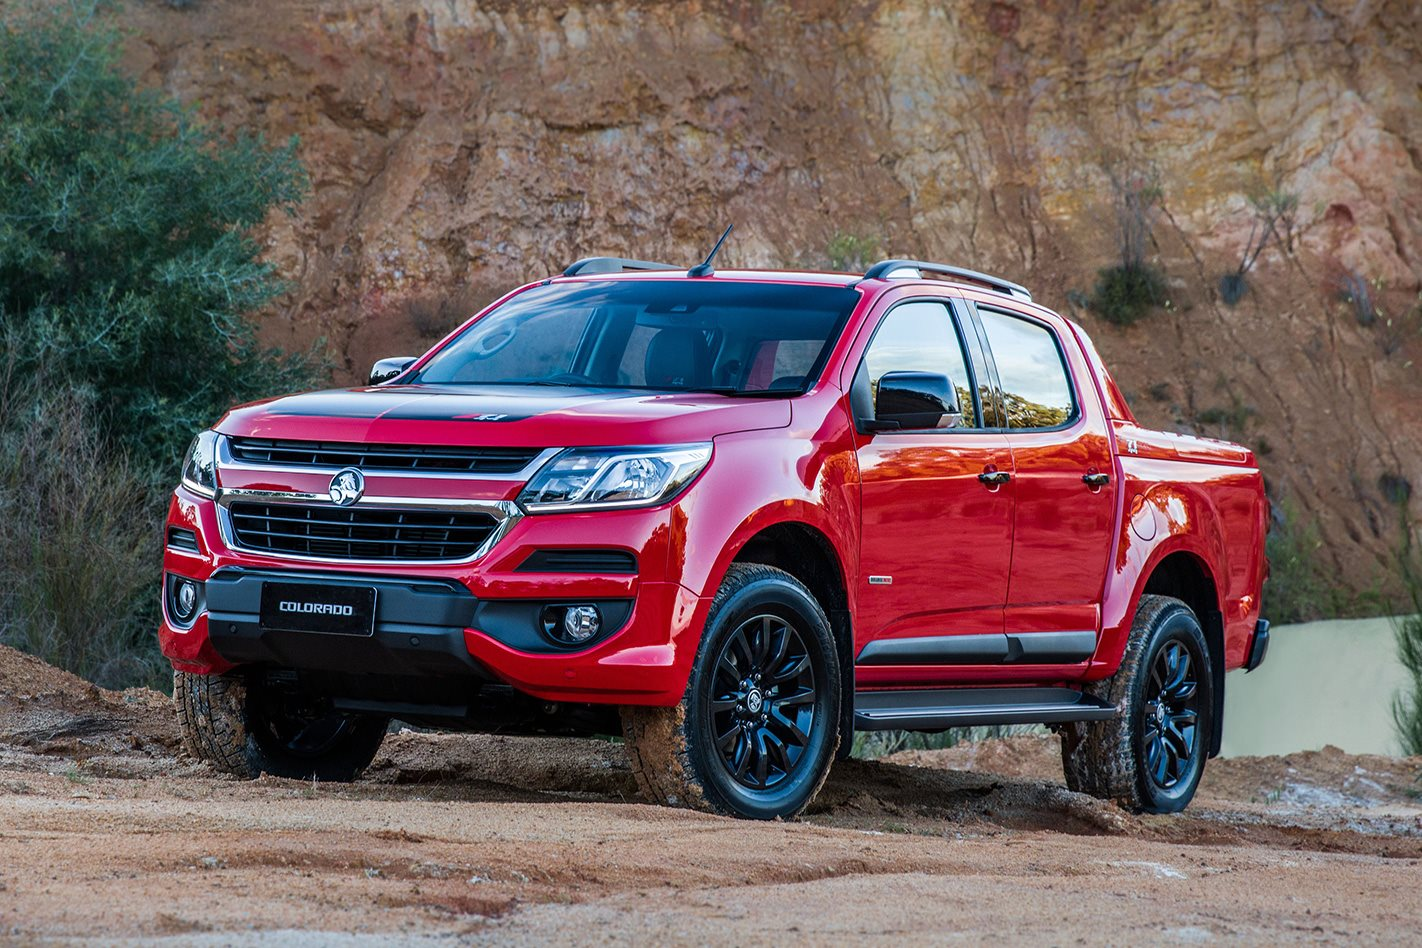 2017 holden colorado out september 1 4x4 australia. Black Bedroom Furniture Sets. Home Design Ideas